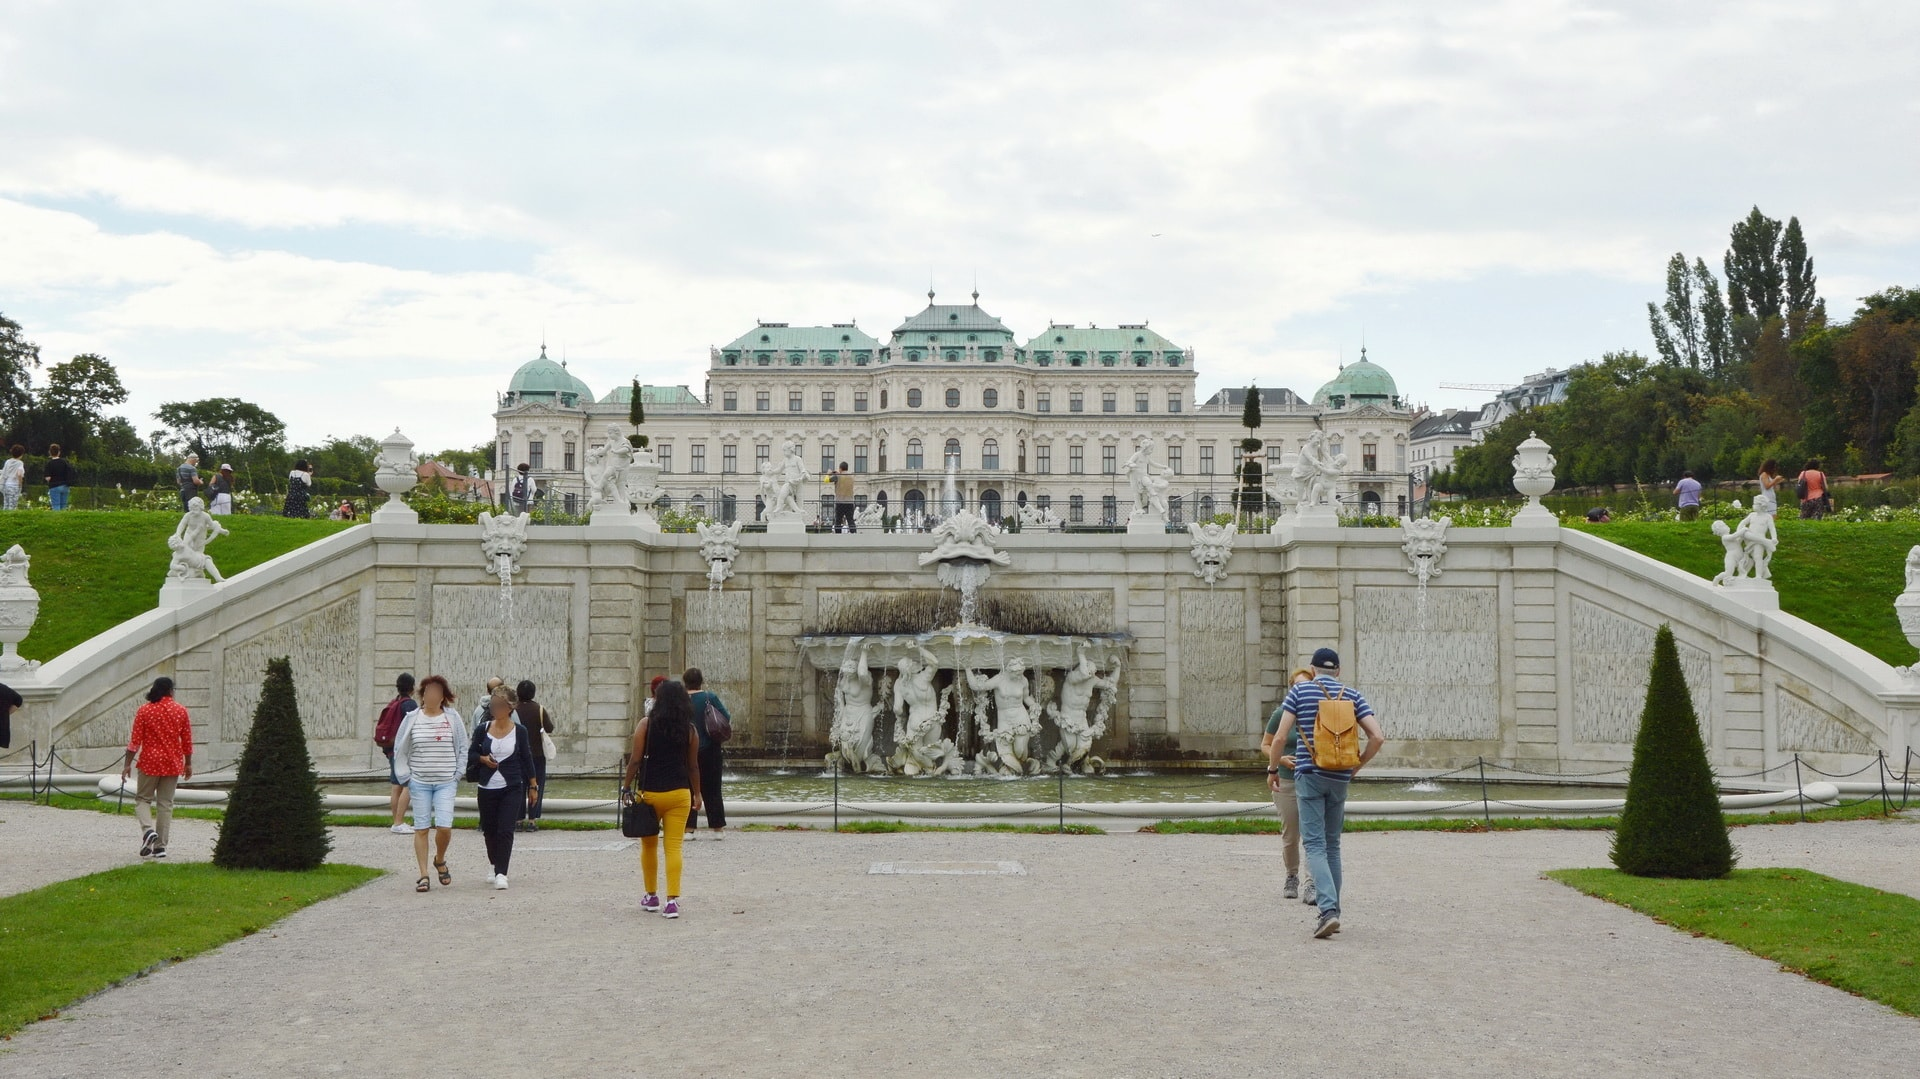 The Upper Belvedere seen from the gardens